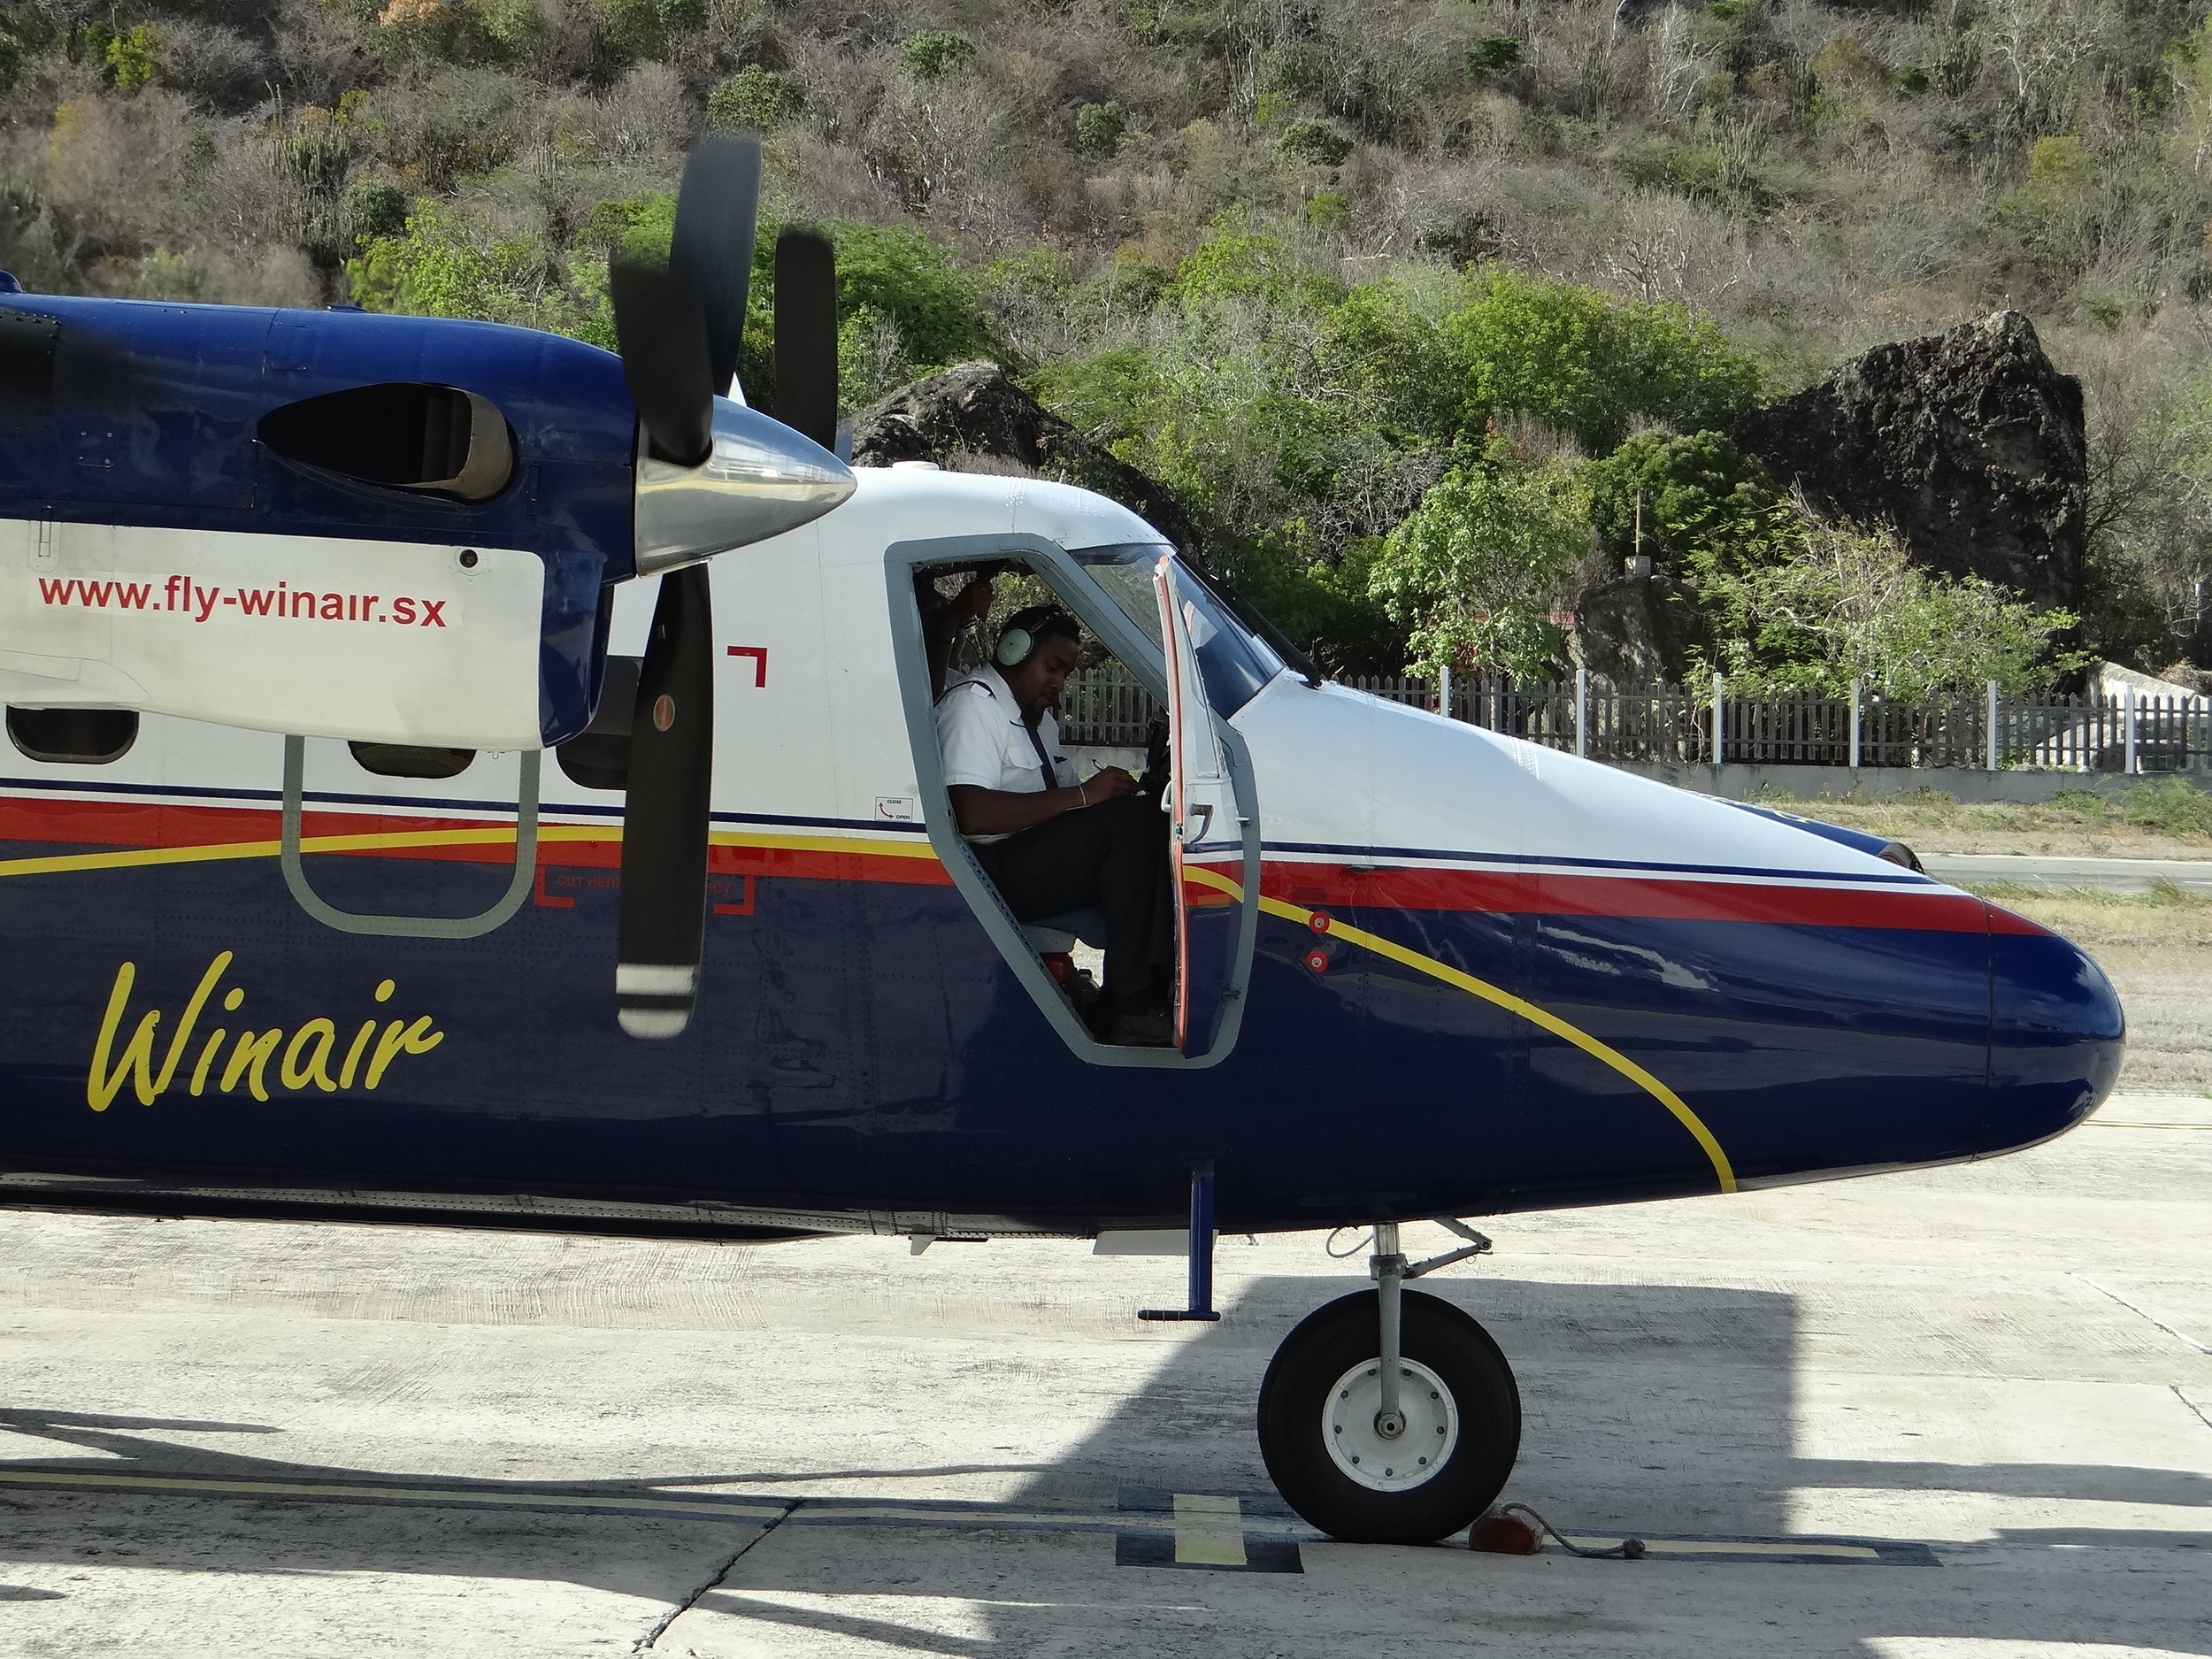 Delivered to you by Twin Otter